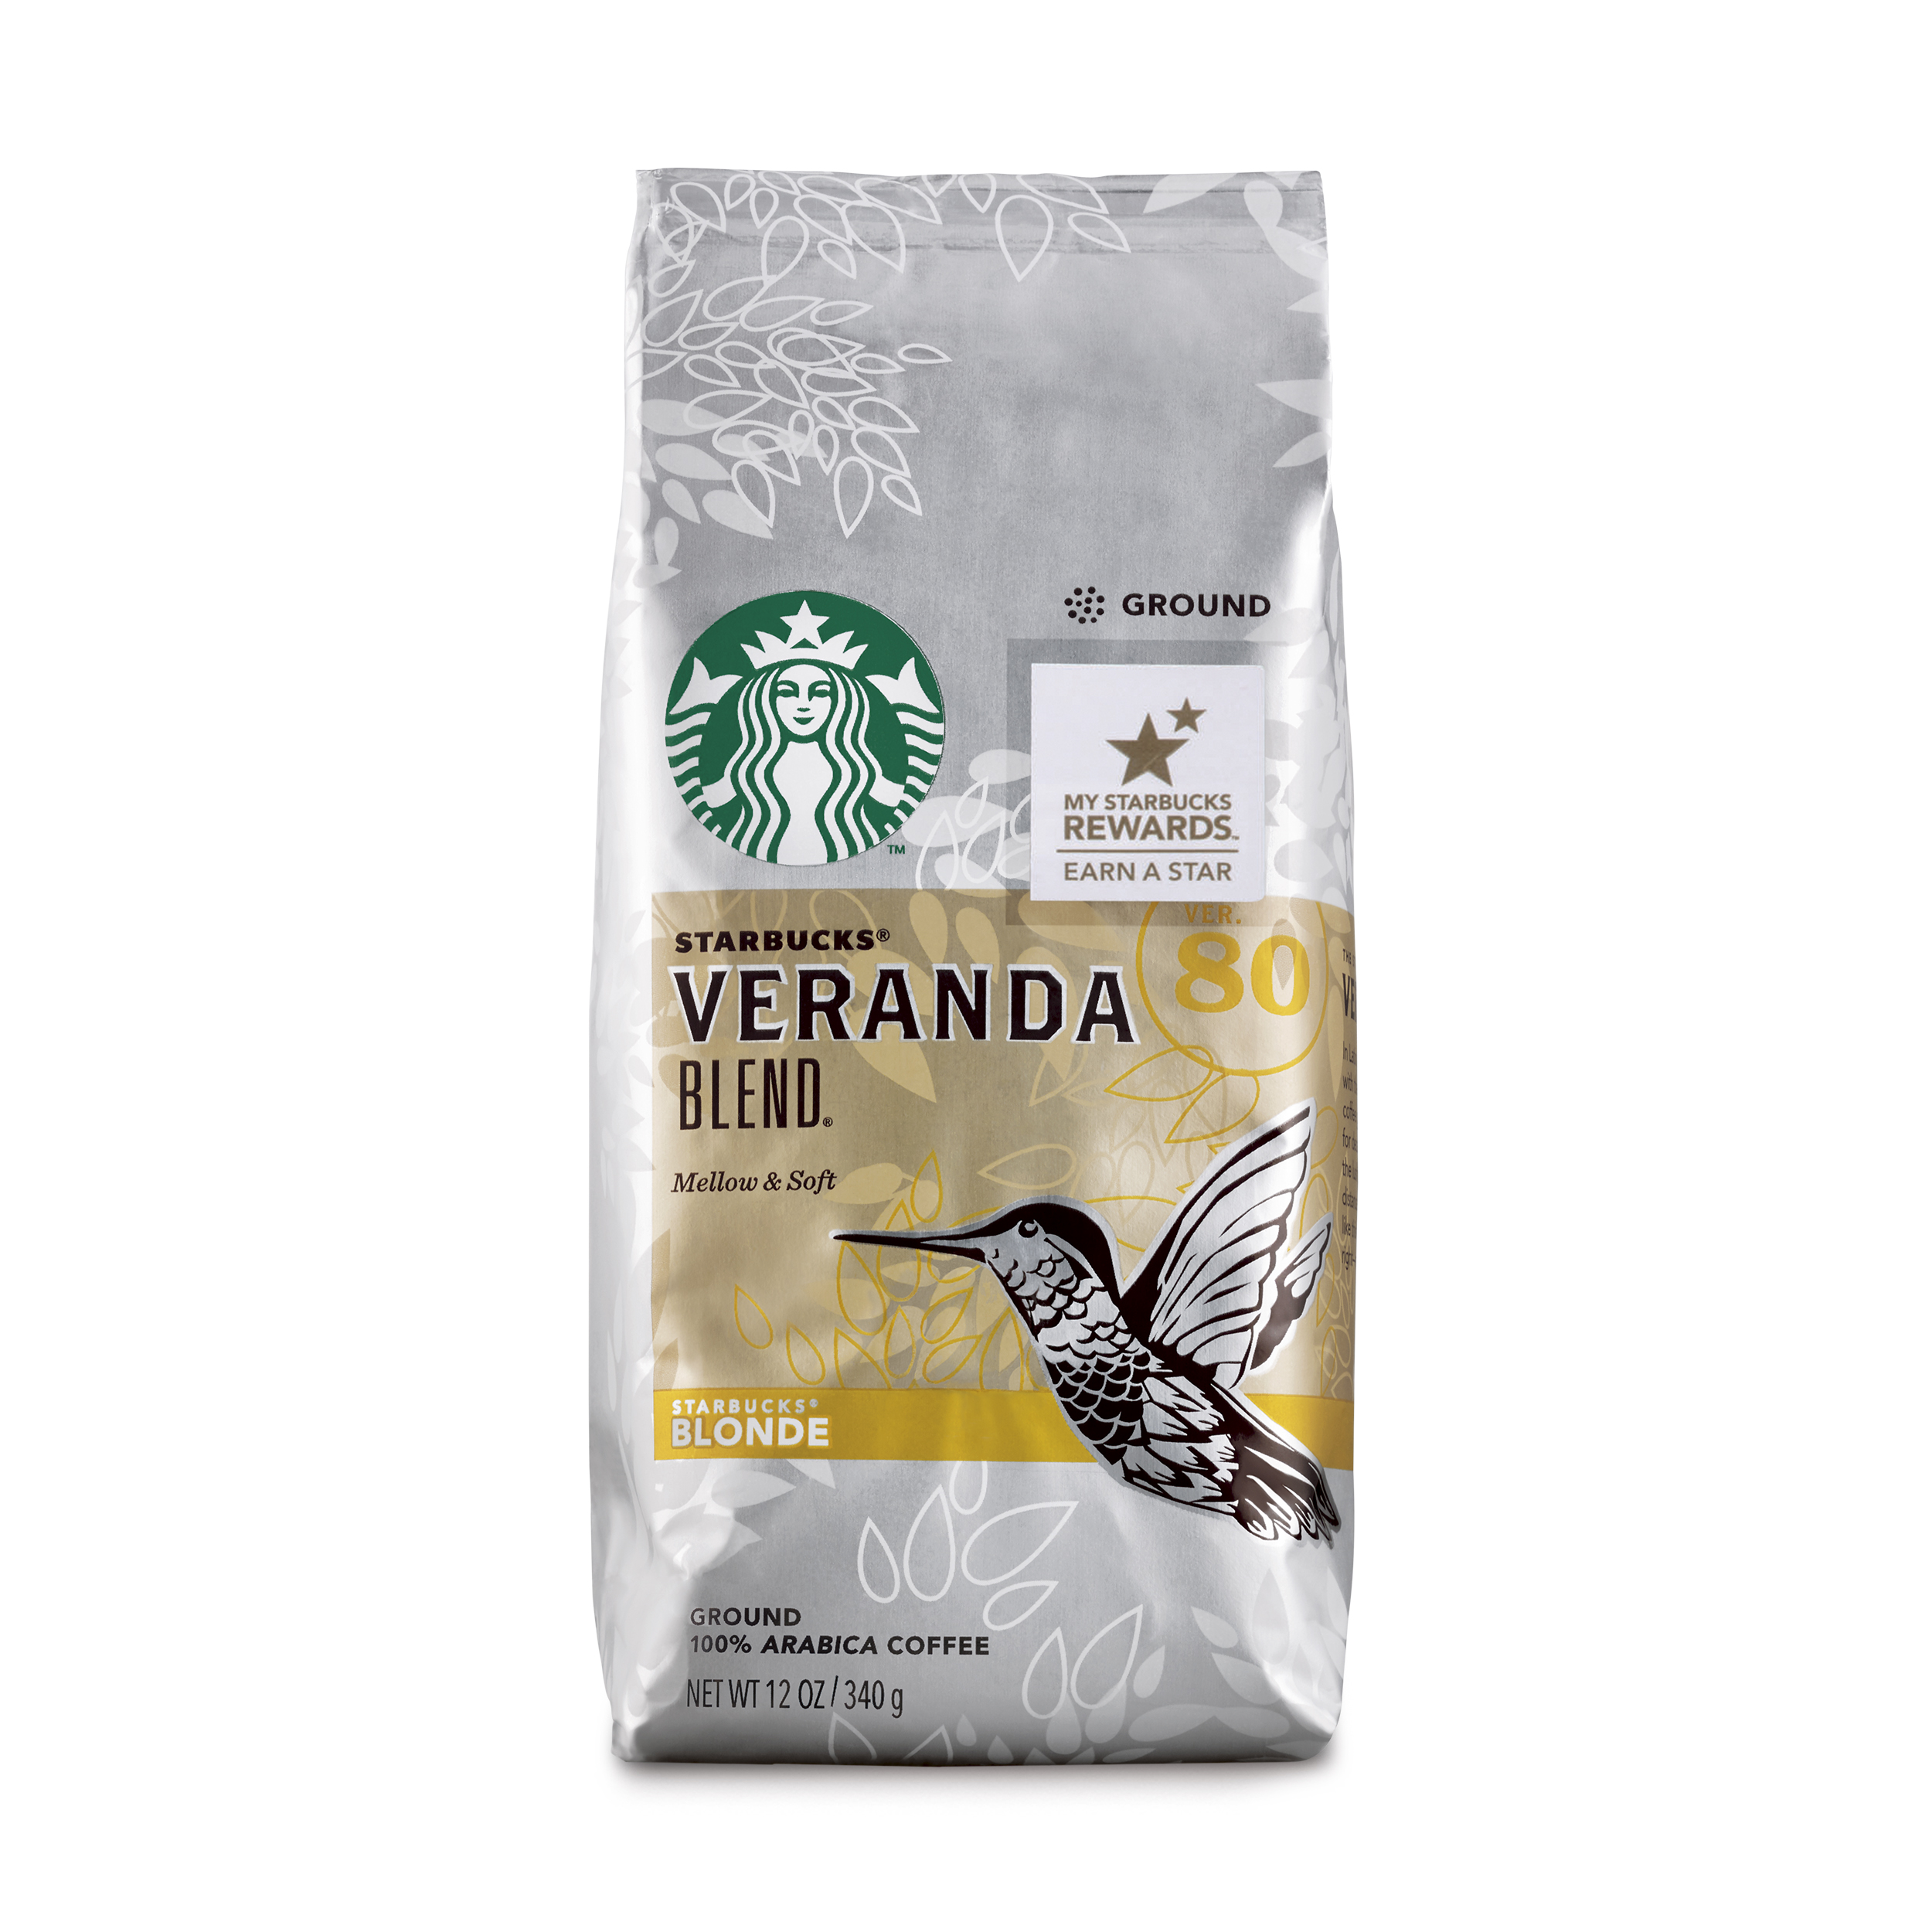 Starbucks Veranda Blend Light Blonde Roast Ground Coffee, 12-Ounce Bag